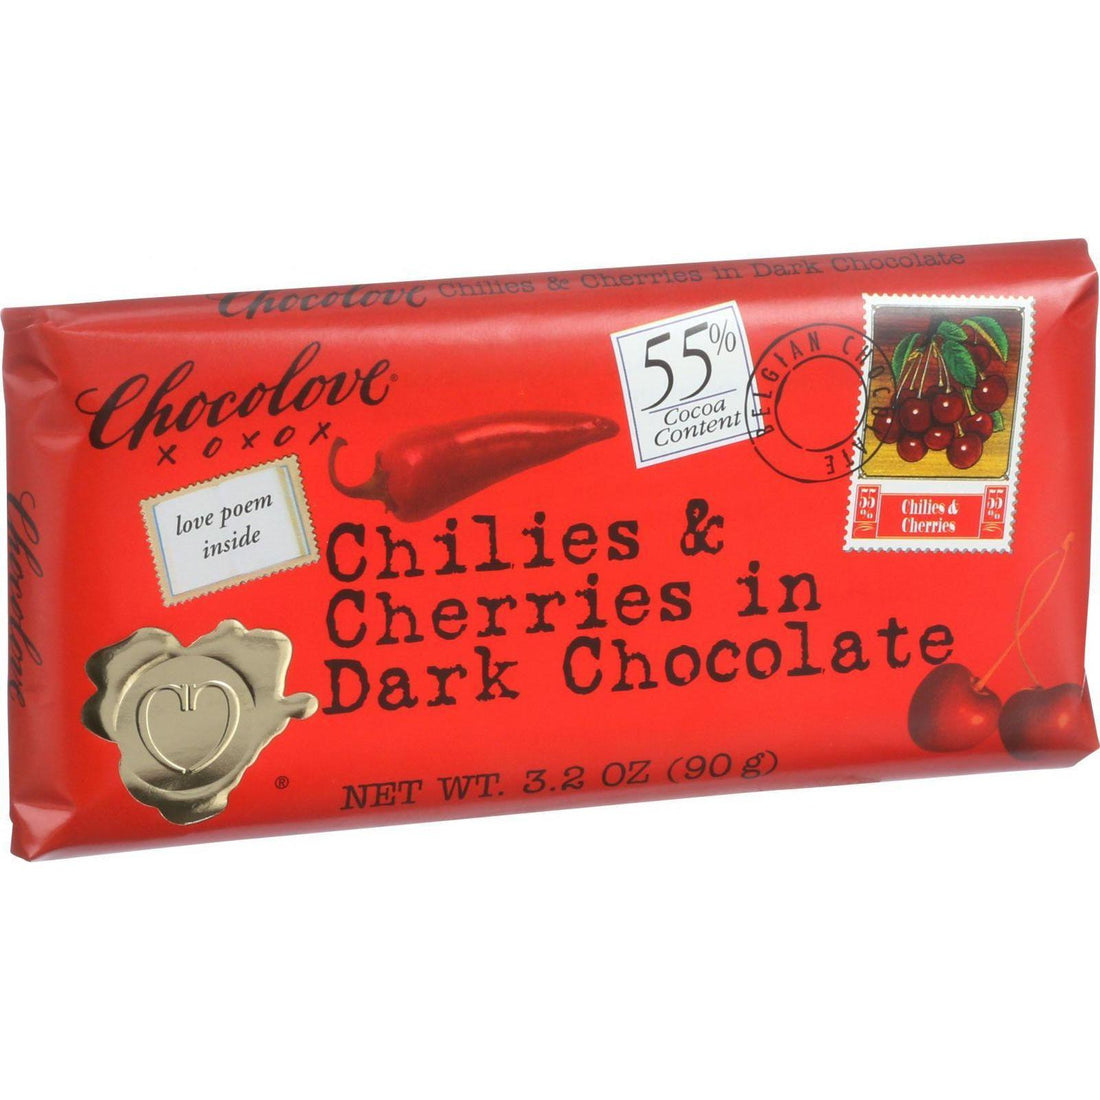 Mother Mantis: Chilies & Cherries In Dark Chocolate Chocolove Xoxox